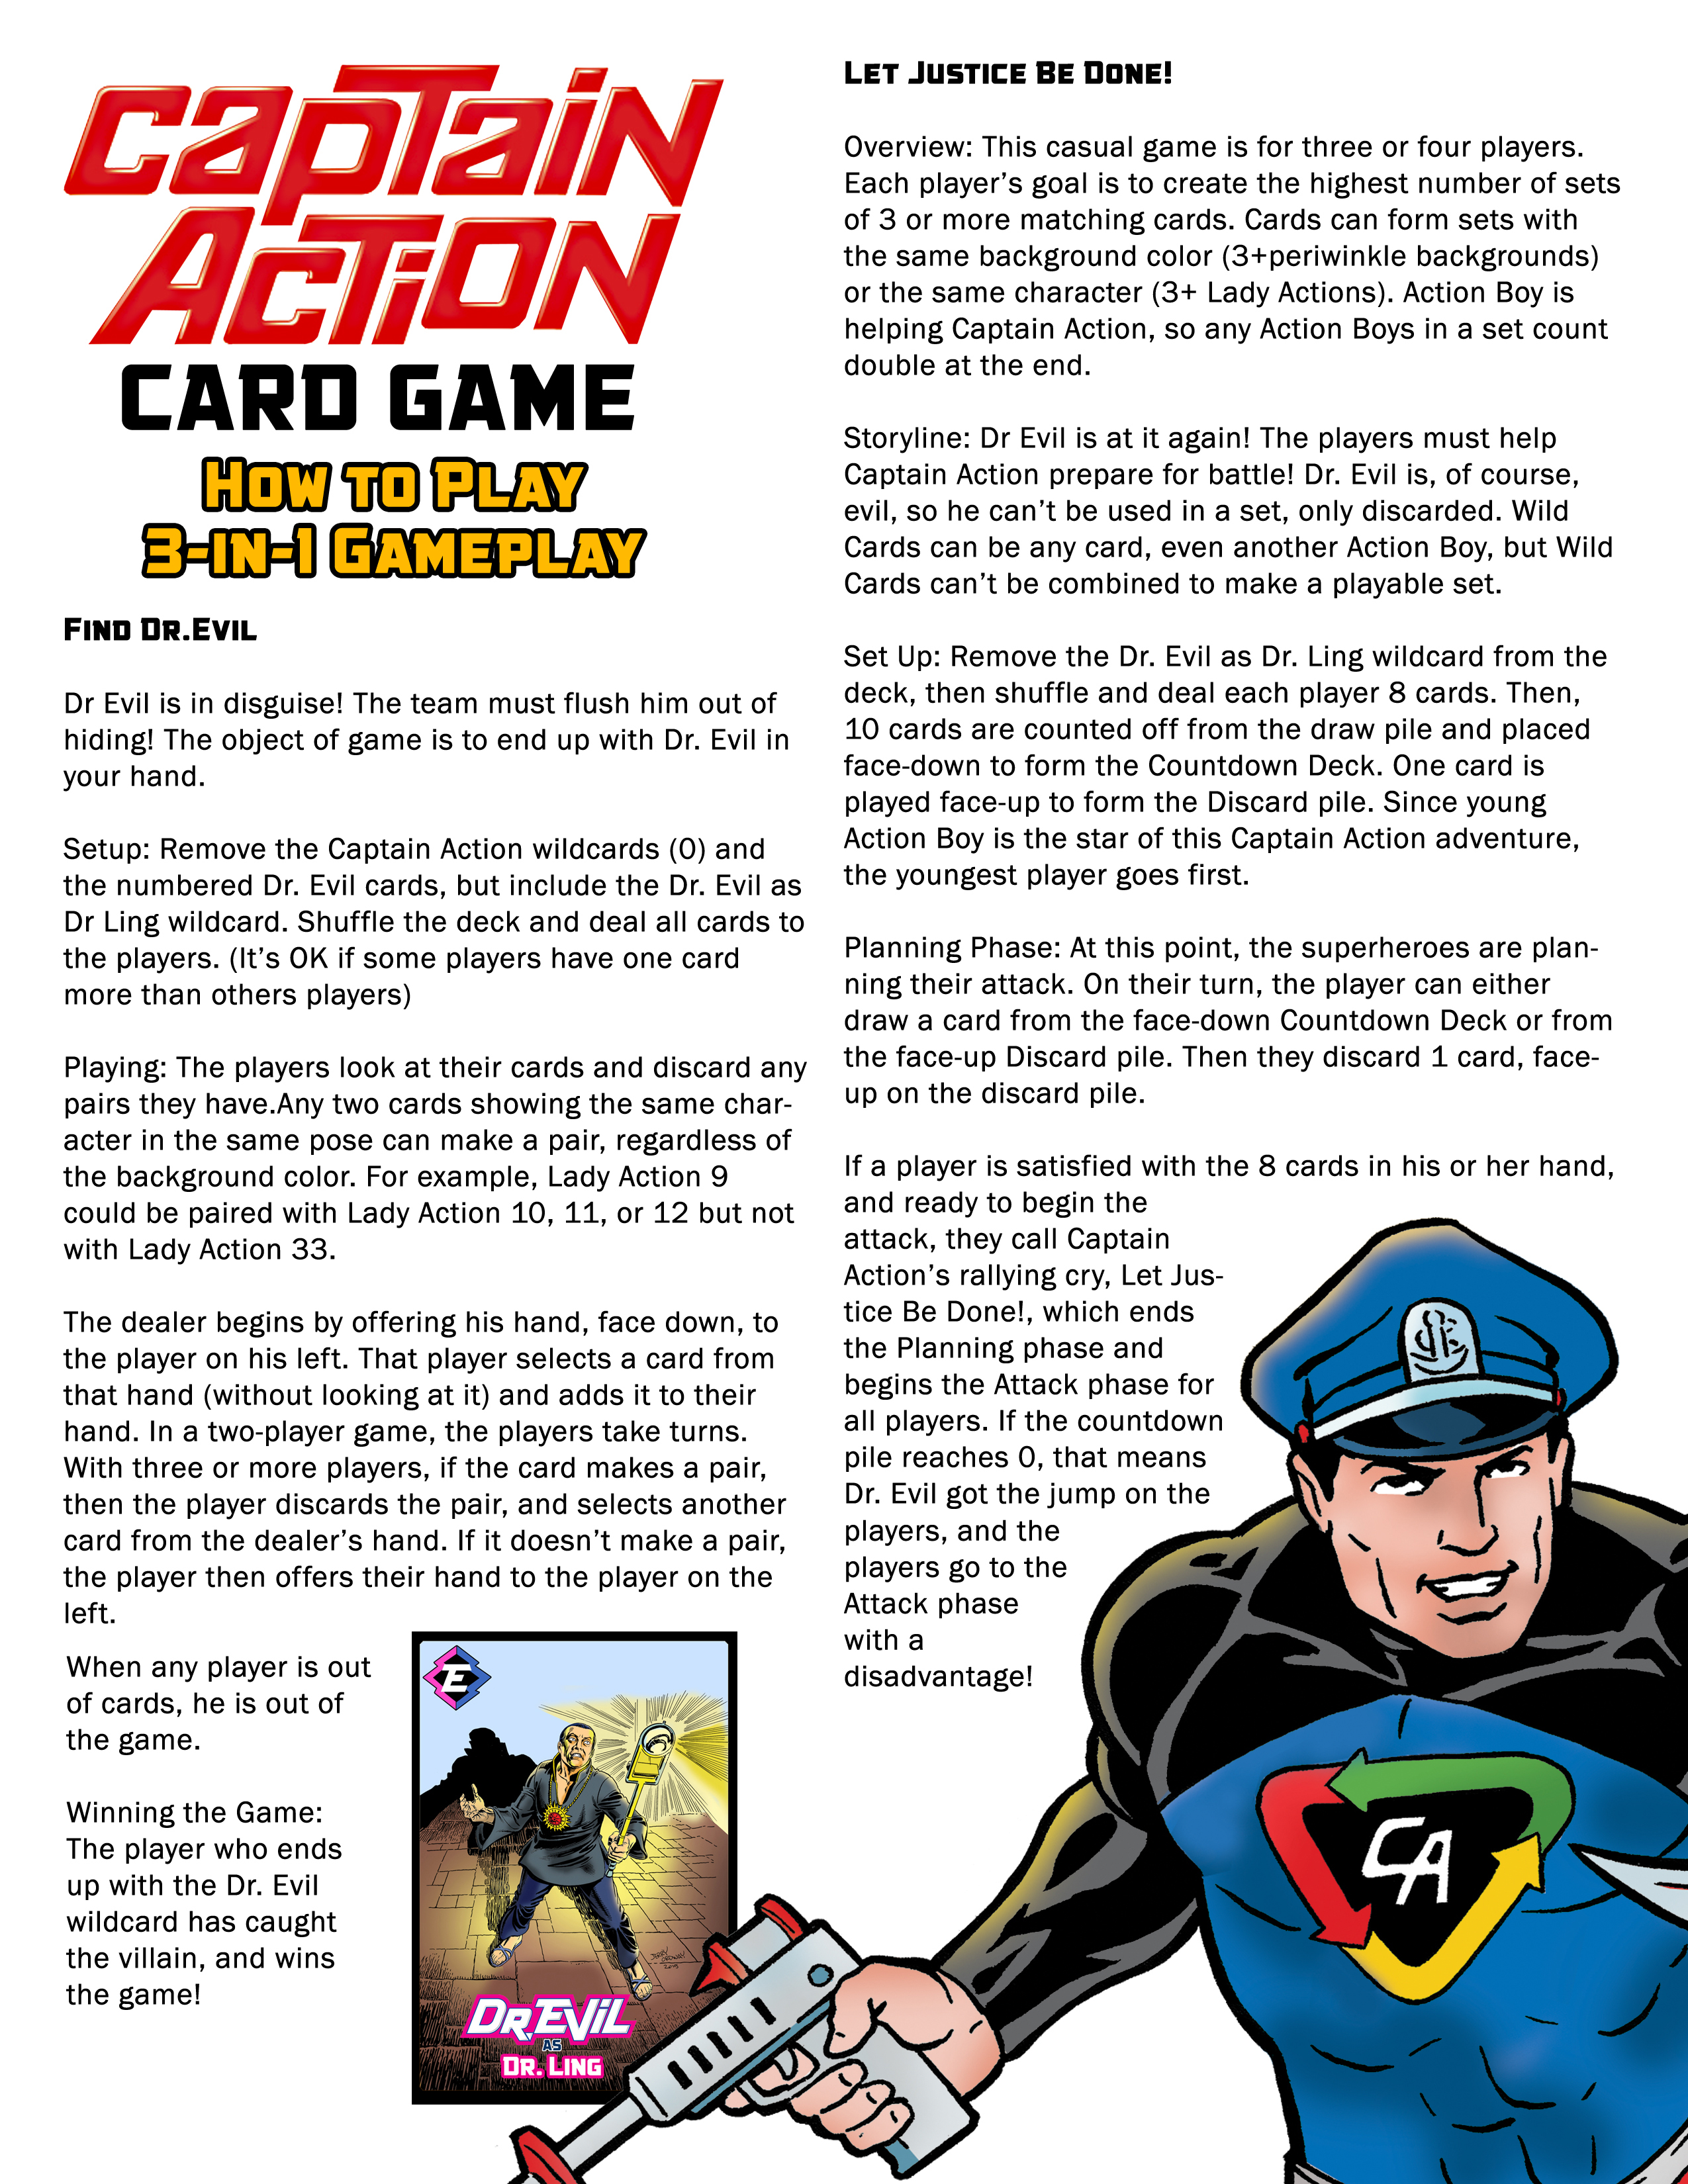 Captain Action Card Game Rules How To Play  3-in-1 Gameplay   Find Dr. Evil   Dr Evil is in disguise! The team must flush him out of hiding! The object of game is to end up with Dr. Evil in your hand.   Setup: Remove the Captain Action wildcards (0) and the numbered Dr. Evil cards, but include the Dr. Evil as Dr Ling wildcard. Shuffle the deck and deal all cards to the players. (It's OK if some players have one card more than others players)   Playing: The players look at their cards and discard any pairs they have.Any two cards showing the same character in the same pose can make a pair, regardless of the background color. For example, Lady Action 9 could be paired with Lady Action 10, 11, or 12 but not with Lady Action 33.   The dealer begins by offering his hand, face down, to the player on his left. That player selects a card from that hand (without looking at it) and adds it to their hand. In a two-player game, the players take turns. With three or more players, if the card makes a pair, then the player discards the pair, and selects another card from the dealer's hand. If it doesn't make a pair, the player then offers their hand to the player on the left.   When any player is out of cards, he is out of the game.  Winning the Game: The player who ends up with the Dr. Evil wildcard has caught the villain, and wins the game!